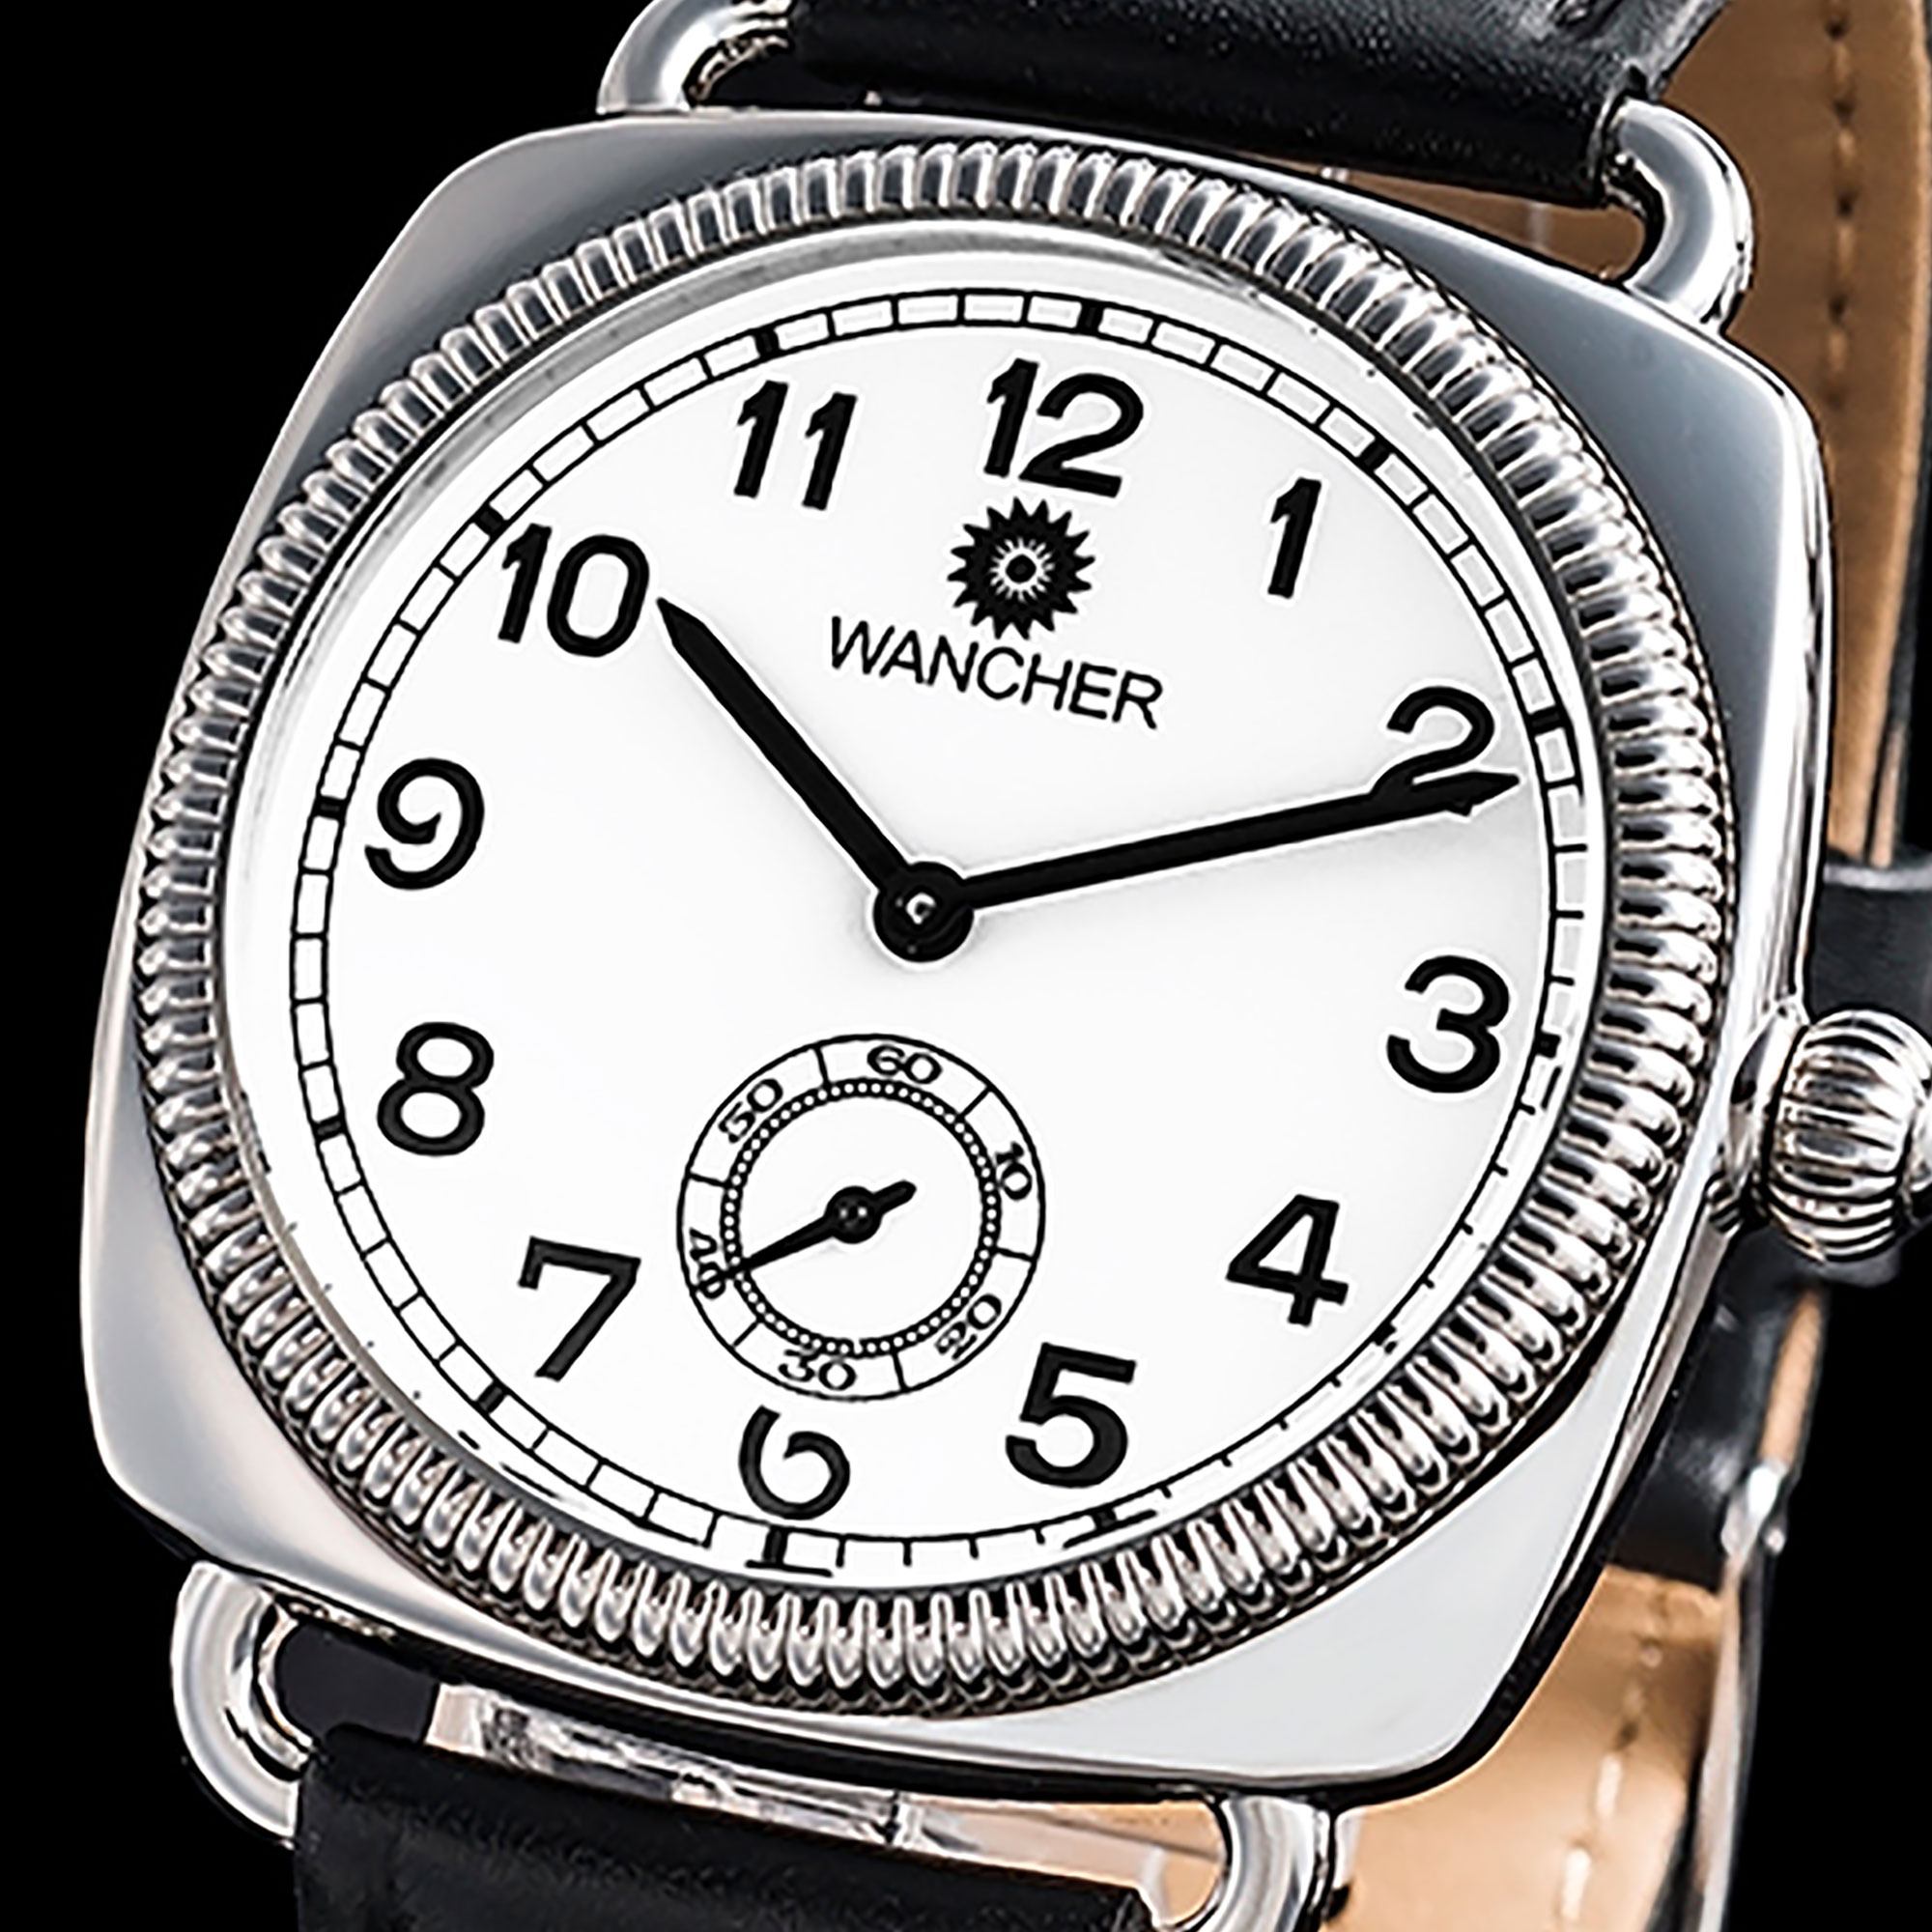 Oyster Shell Design - Oyster shell shape makes the design of the watch stunning from the first sight. High-quality 316L stainless steel case is crafted by resembling the seashell shape which belongs to the contemporary designs of the 20s.